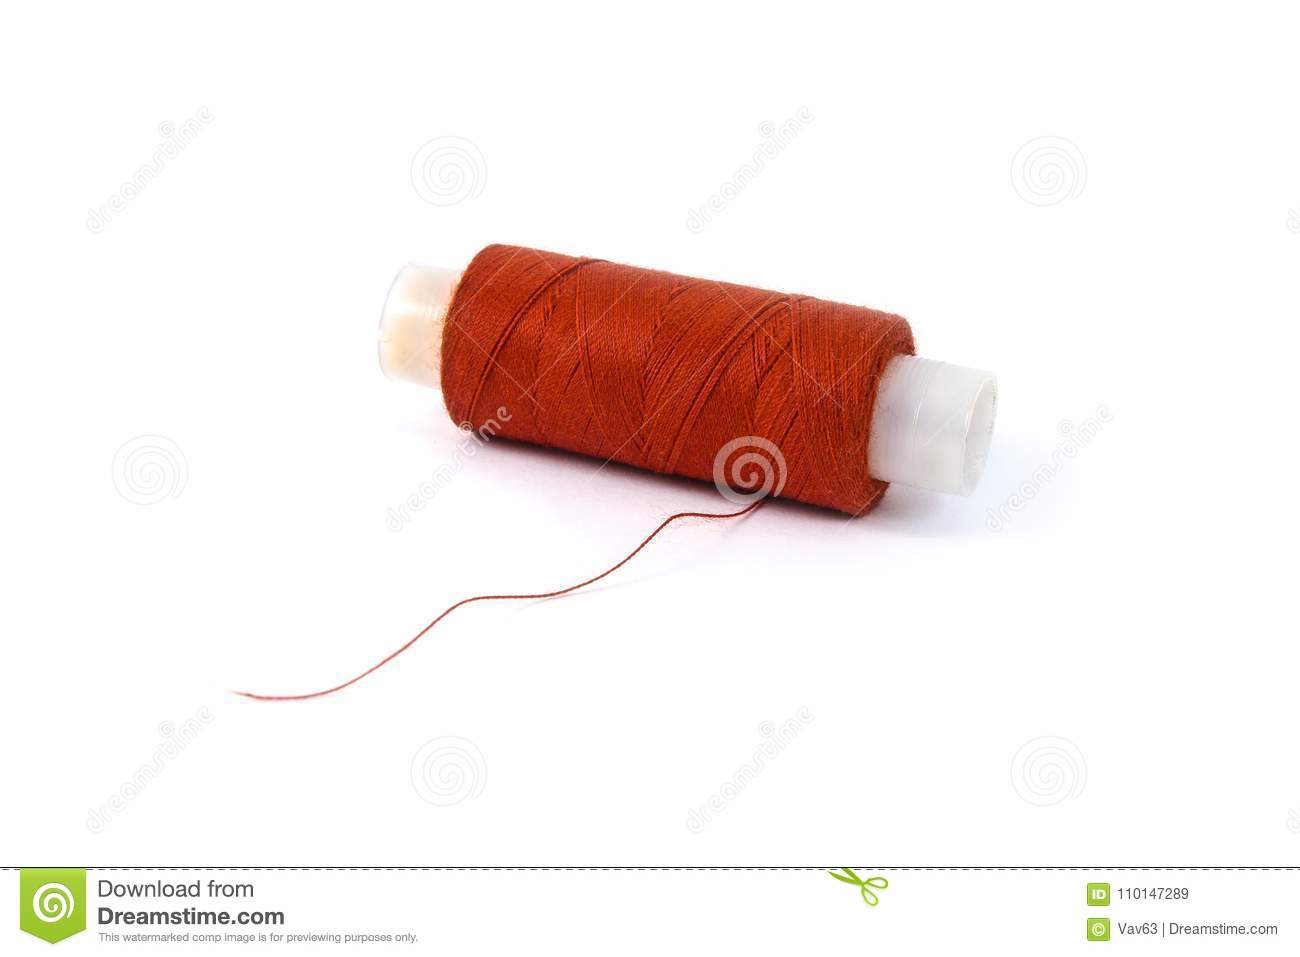 Coil with red thread